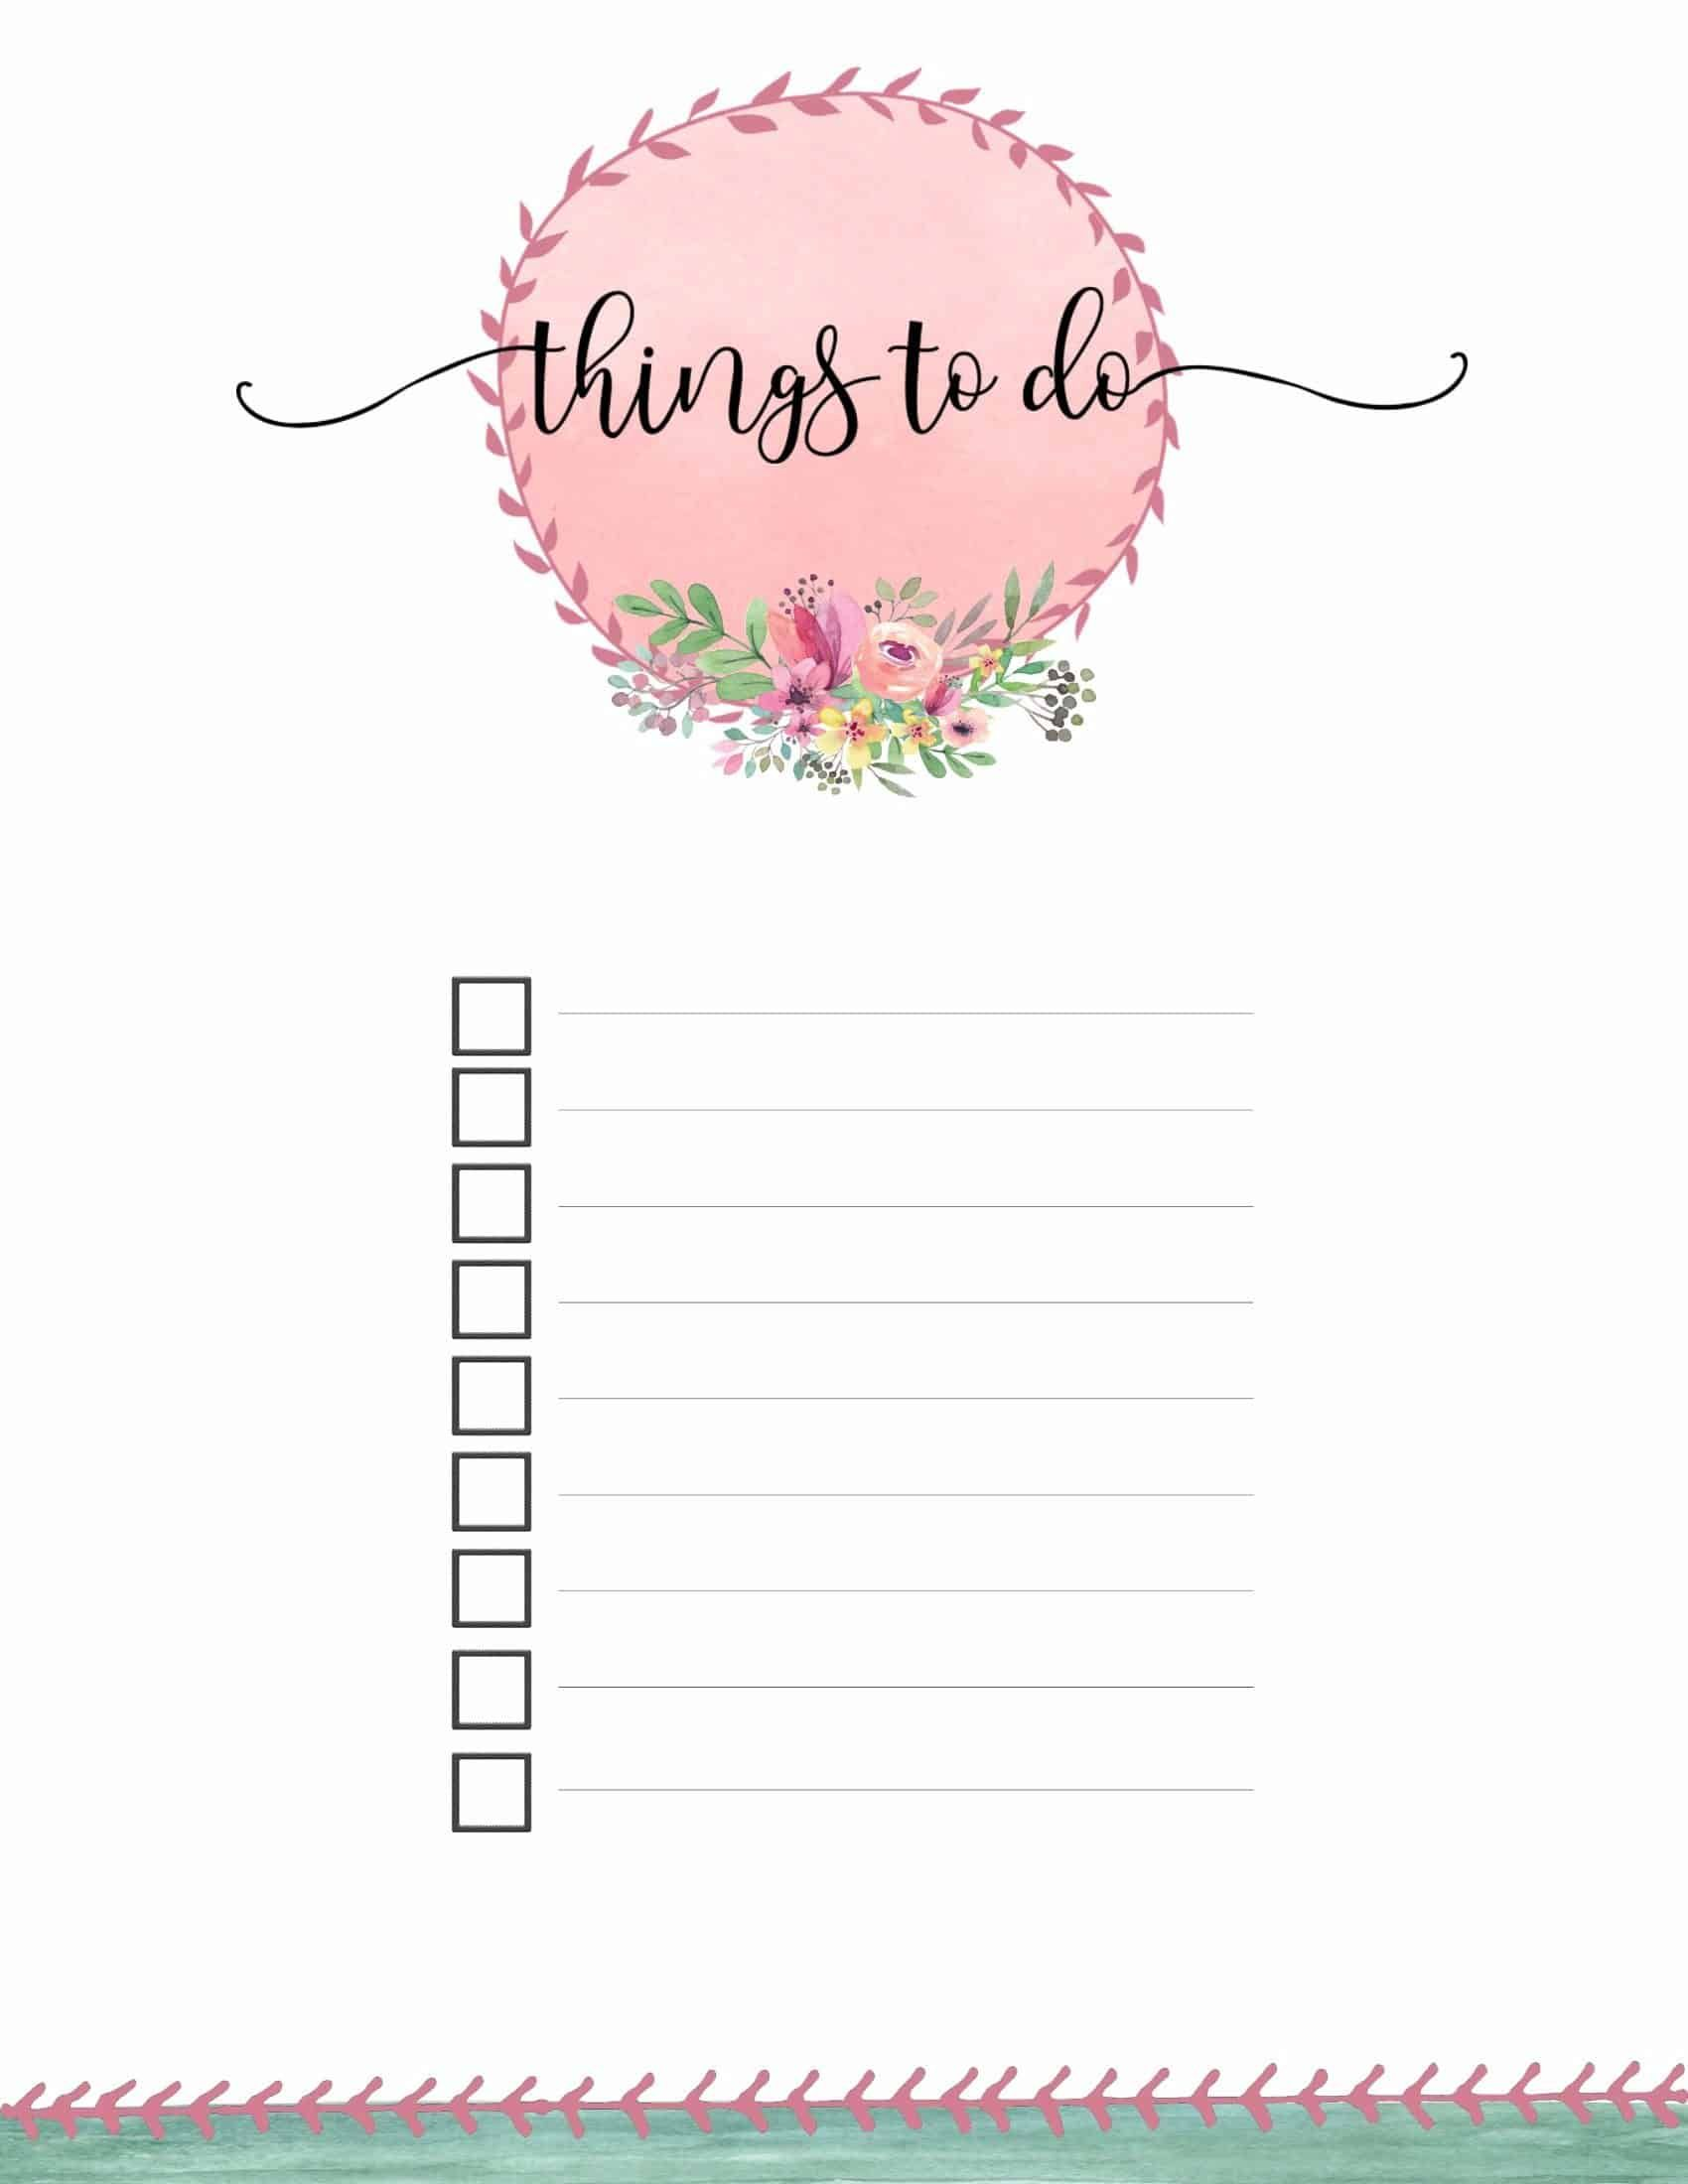 Free Printable To Do List Template Paper Trail Design To Do Lists Printable To Do Checklist Free To Do List